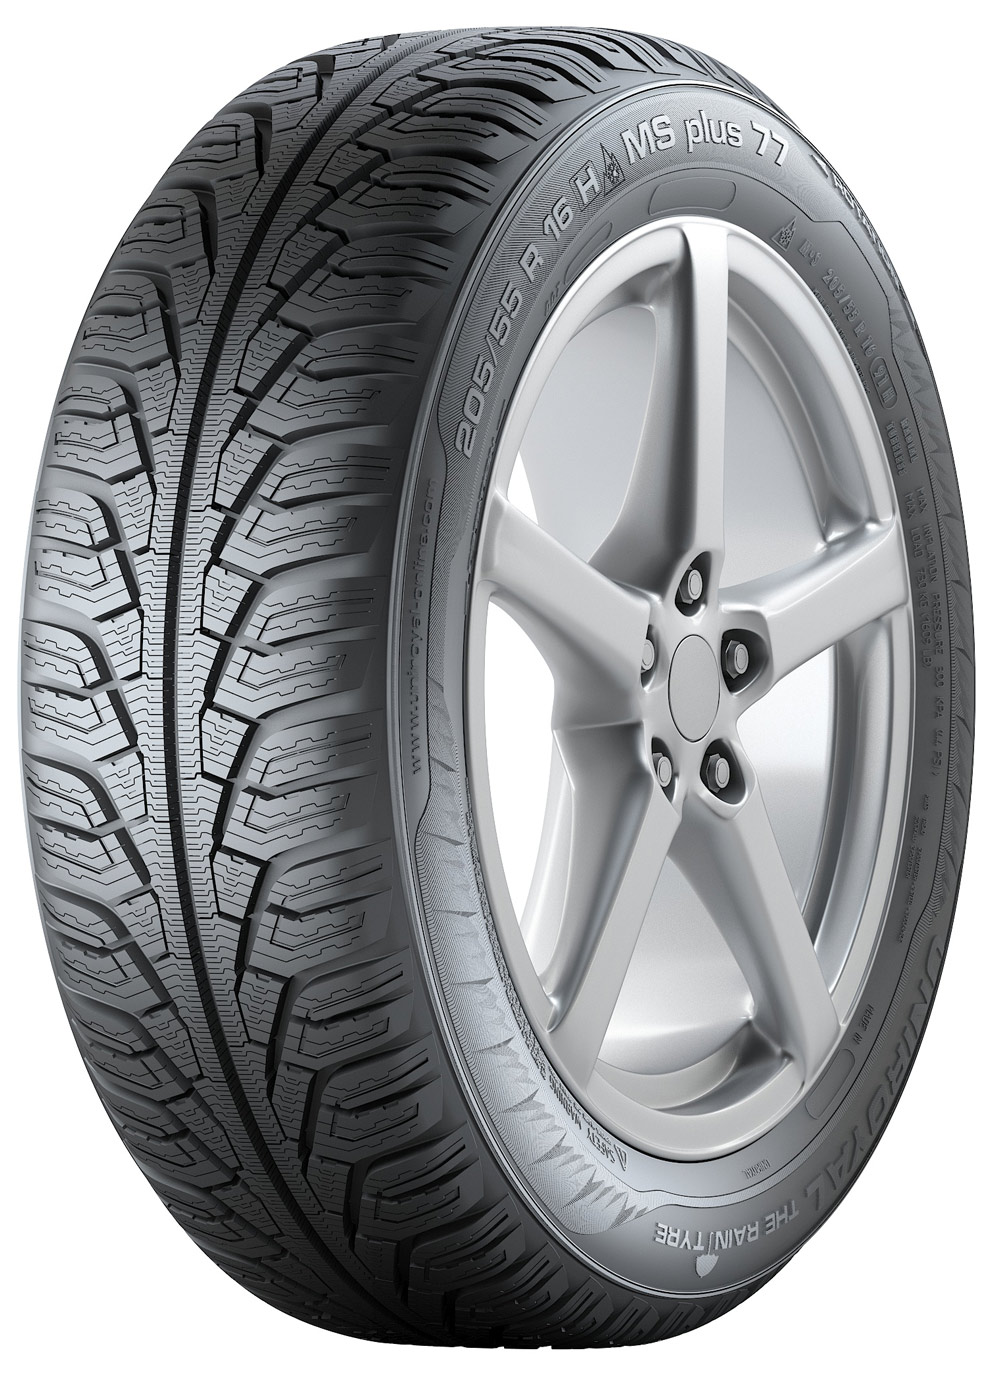 Uniroyal MS Plus 77 185/65 R15 88T